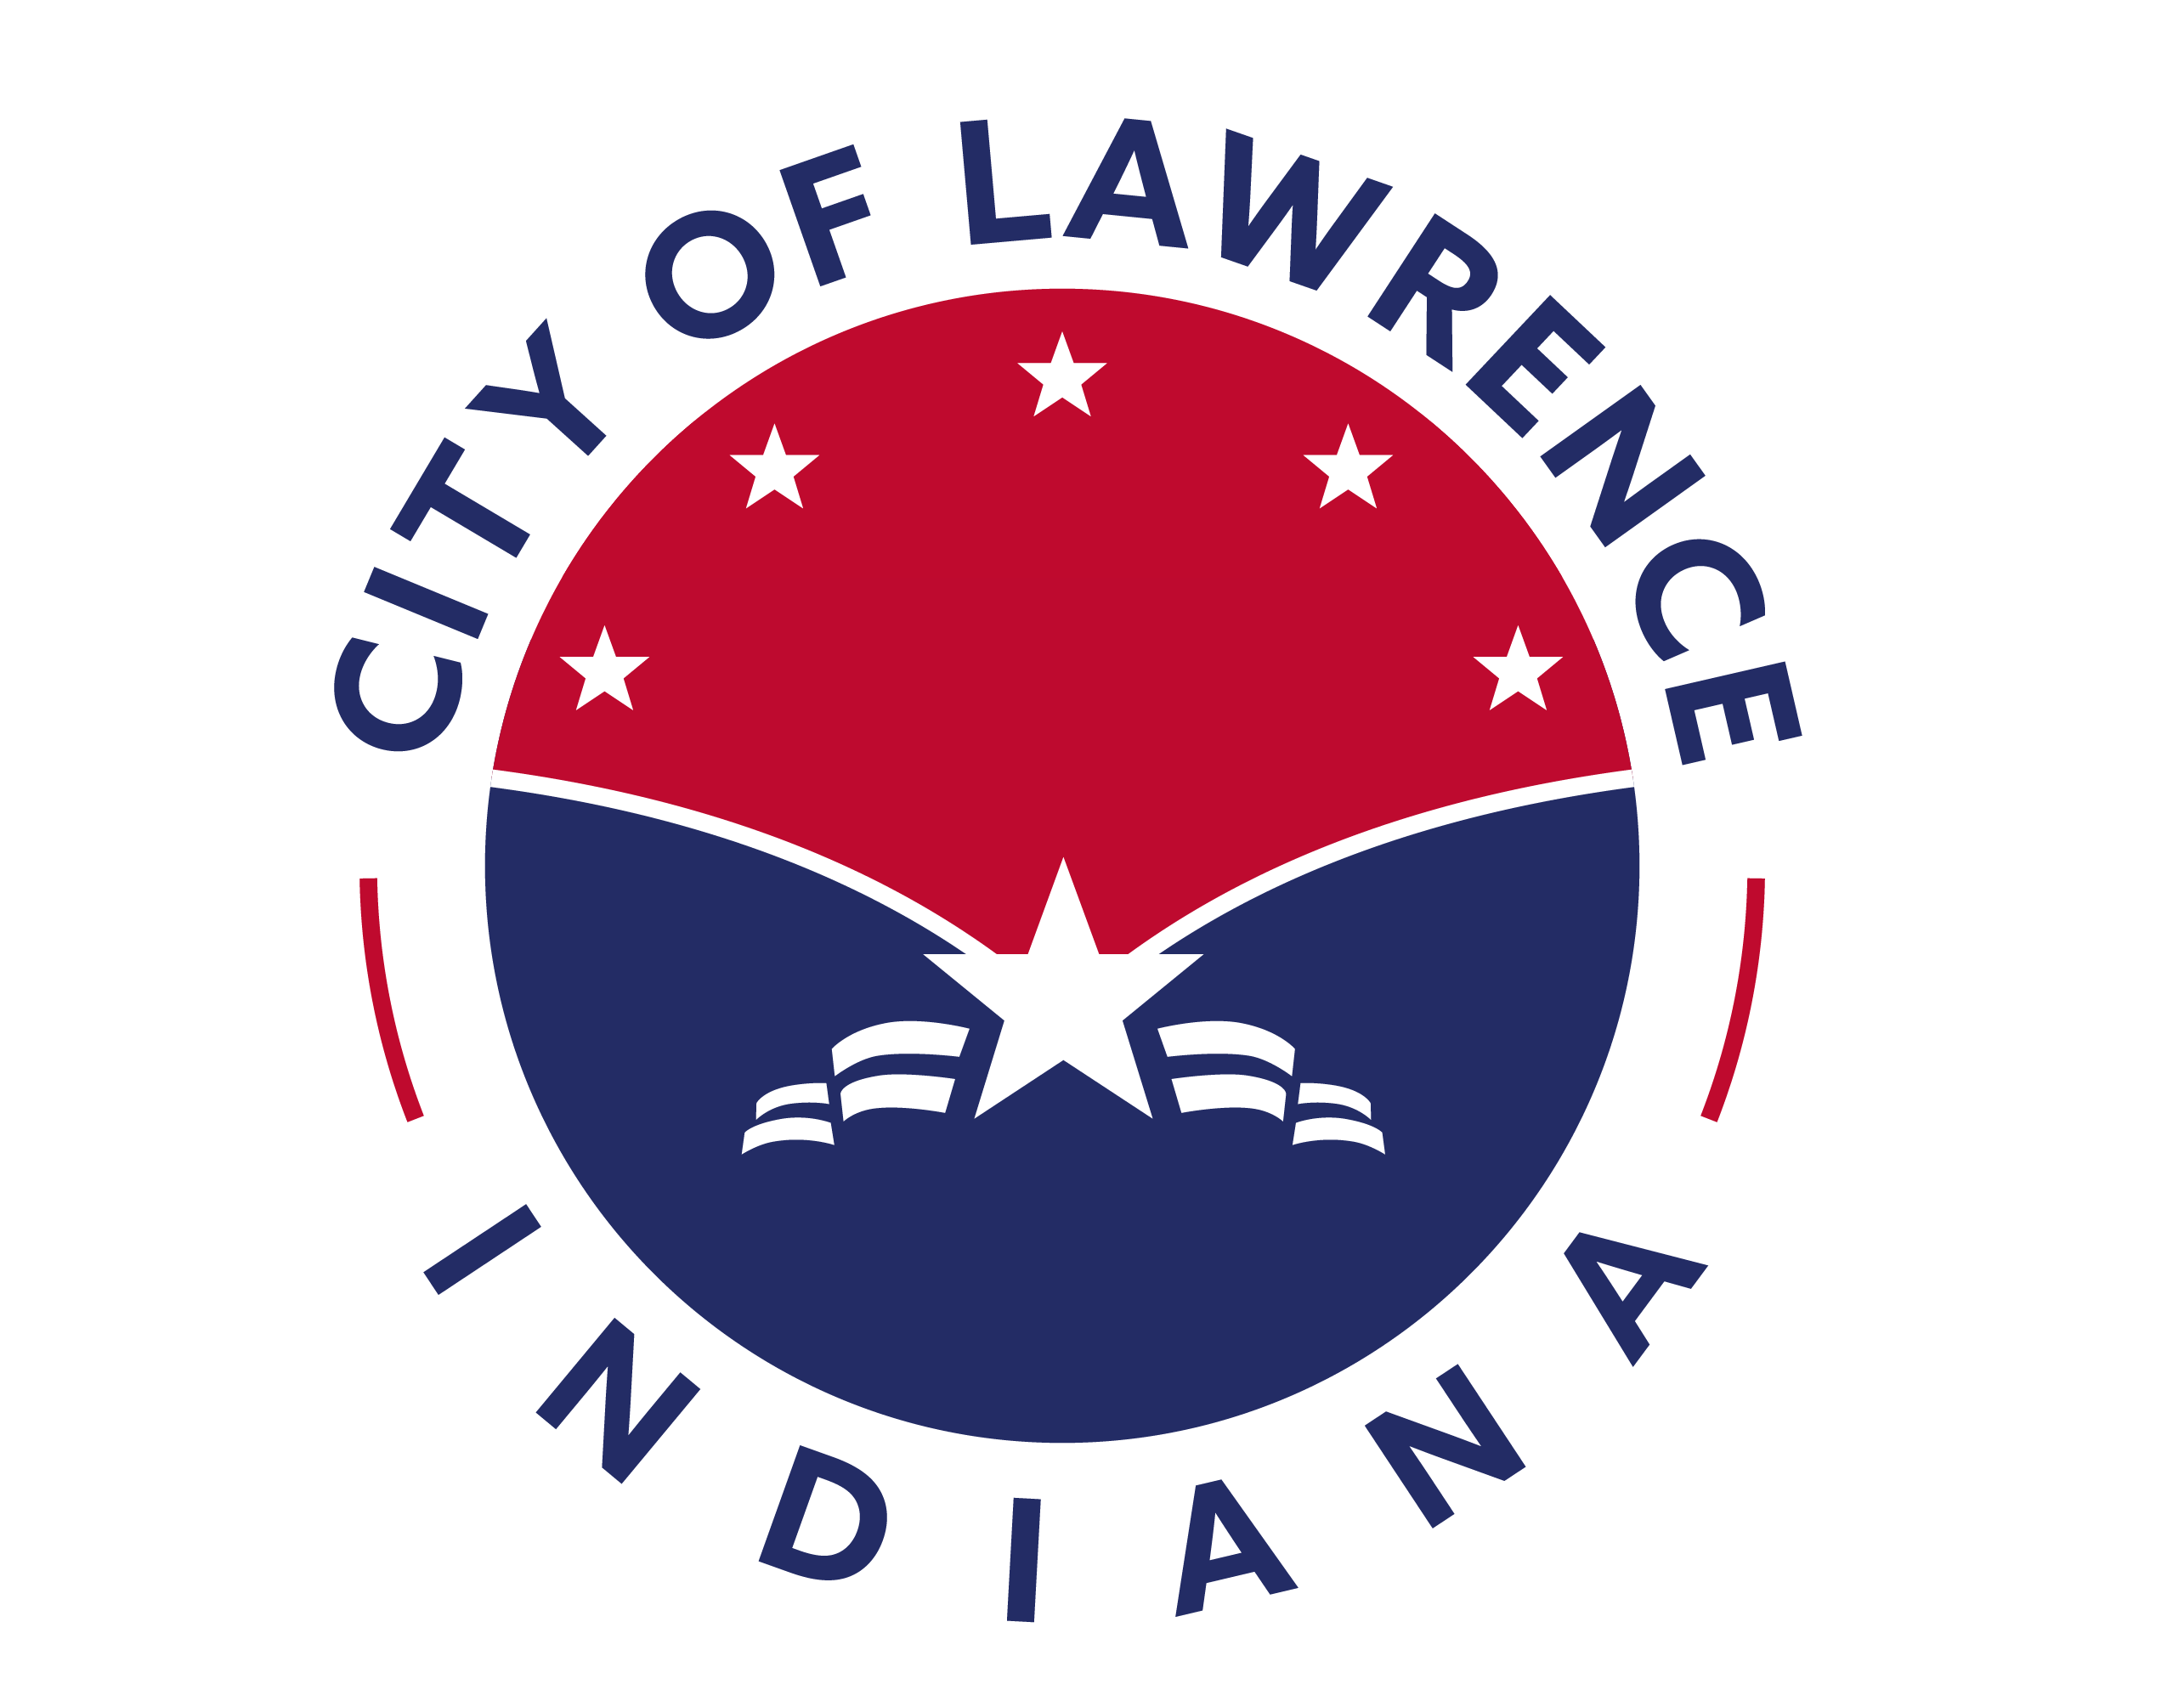 City of Lawrence Website